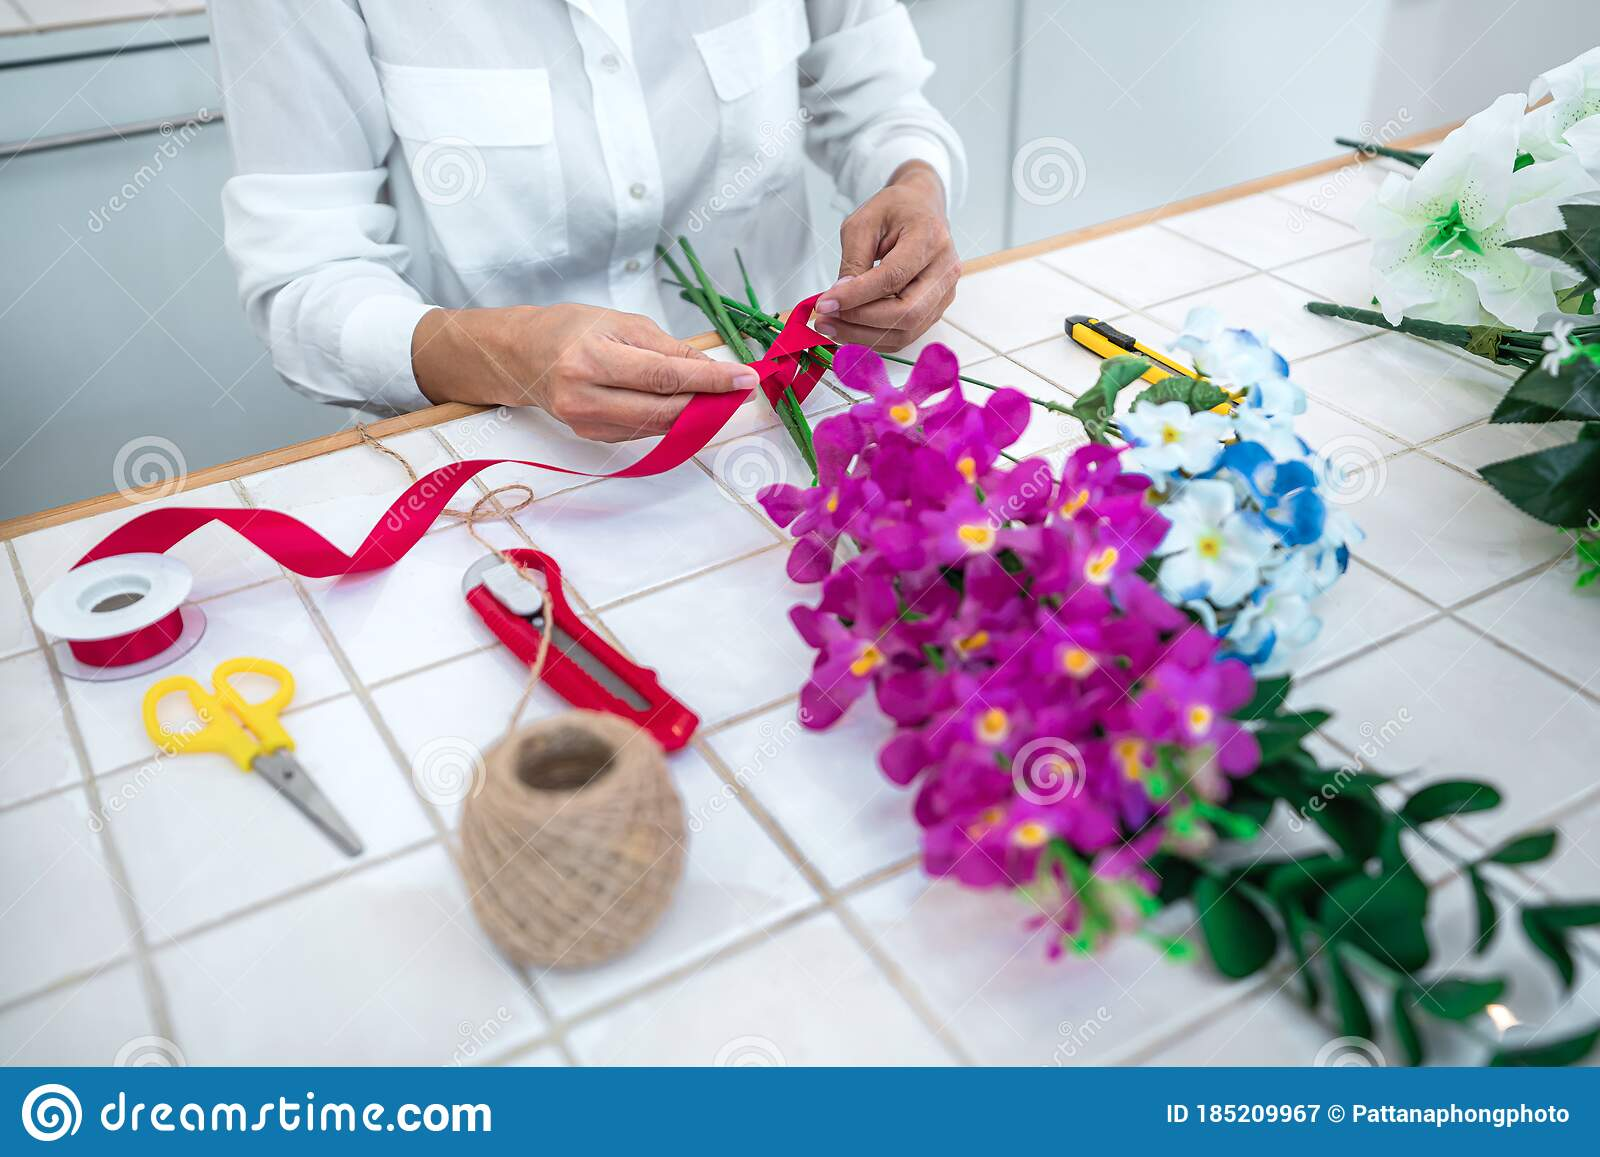 Arranging Artificial Flowers Decoration At Home Young Woman Florist Work Making Organizing Diy Artificial Flower Craft And Hand Stock Image Image Of Business Decor 185209967